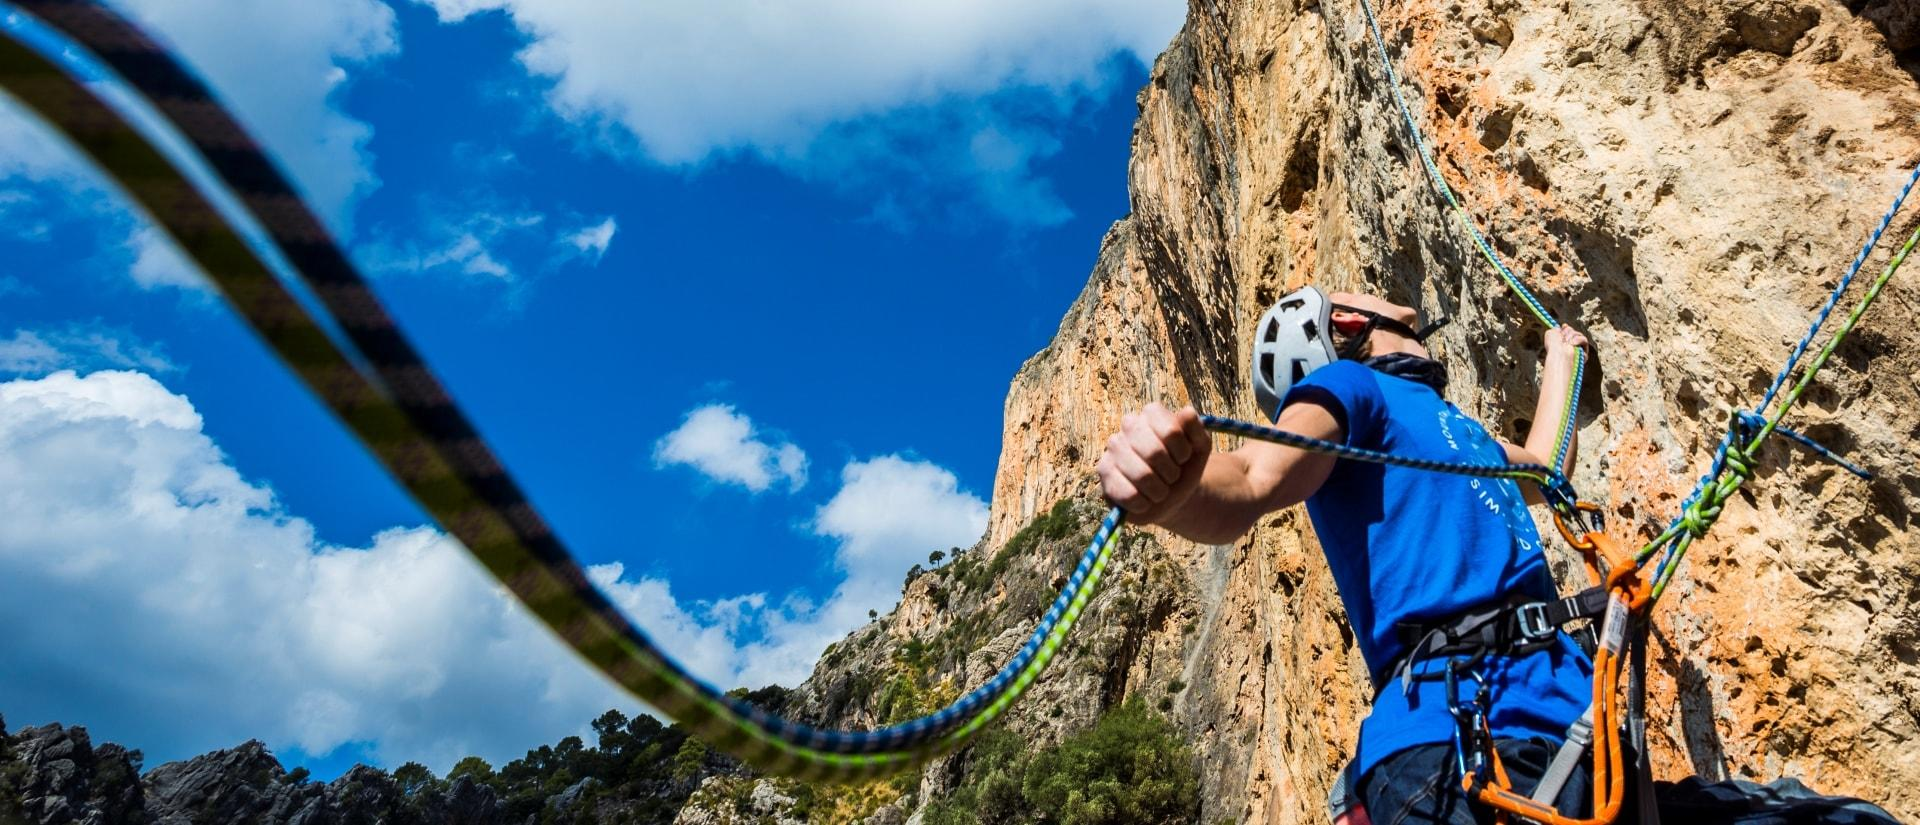 How to Choose A Climbing Rope?